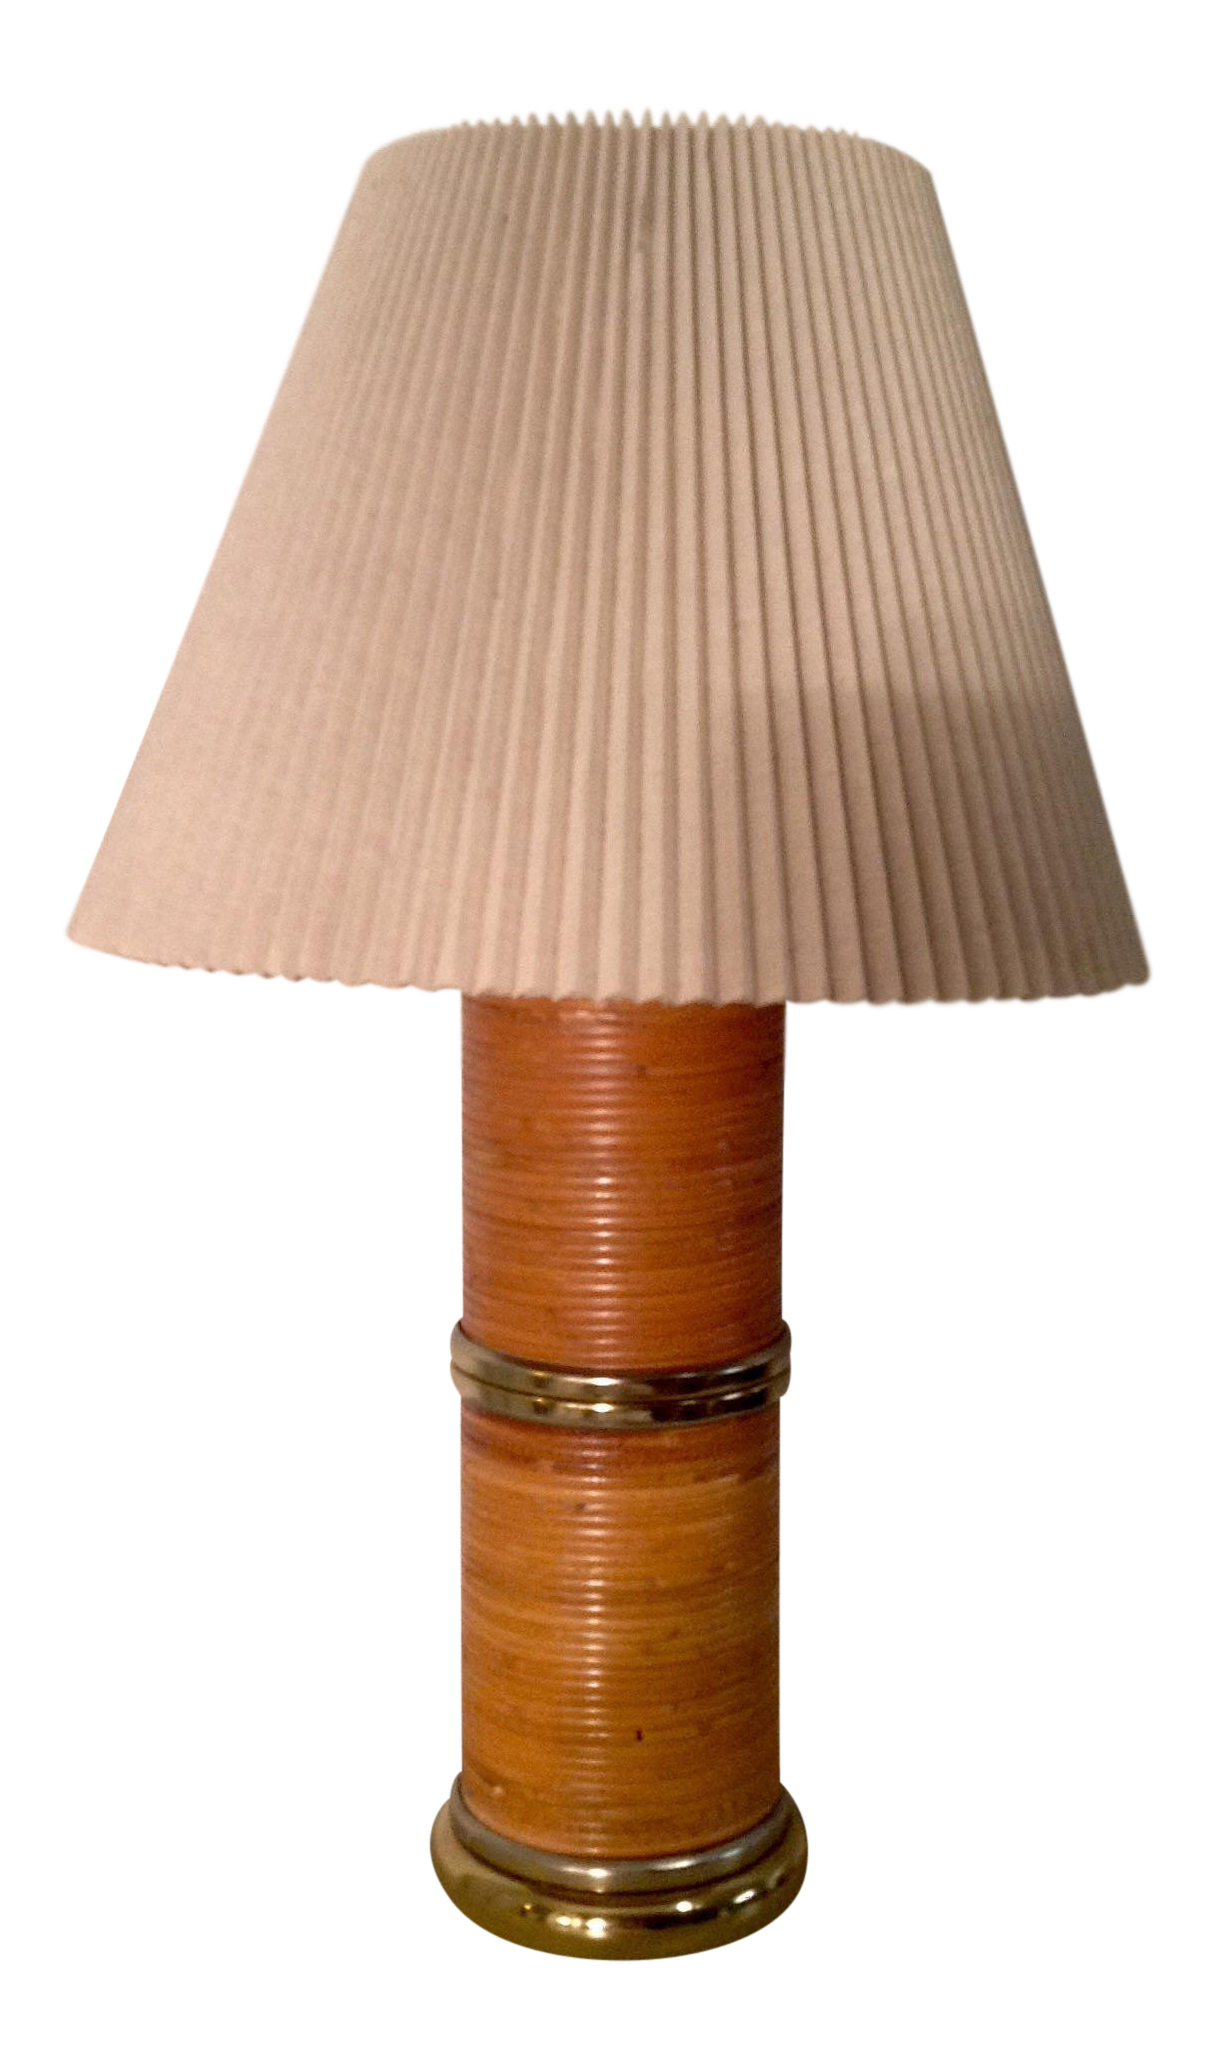 Bamboo stand awesome with. Lamp clipart lampstand